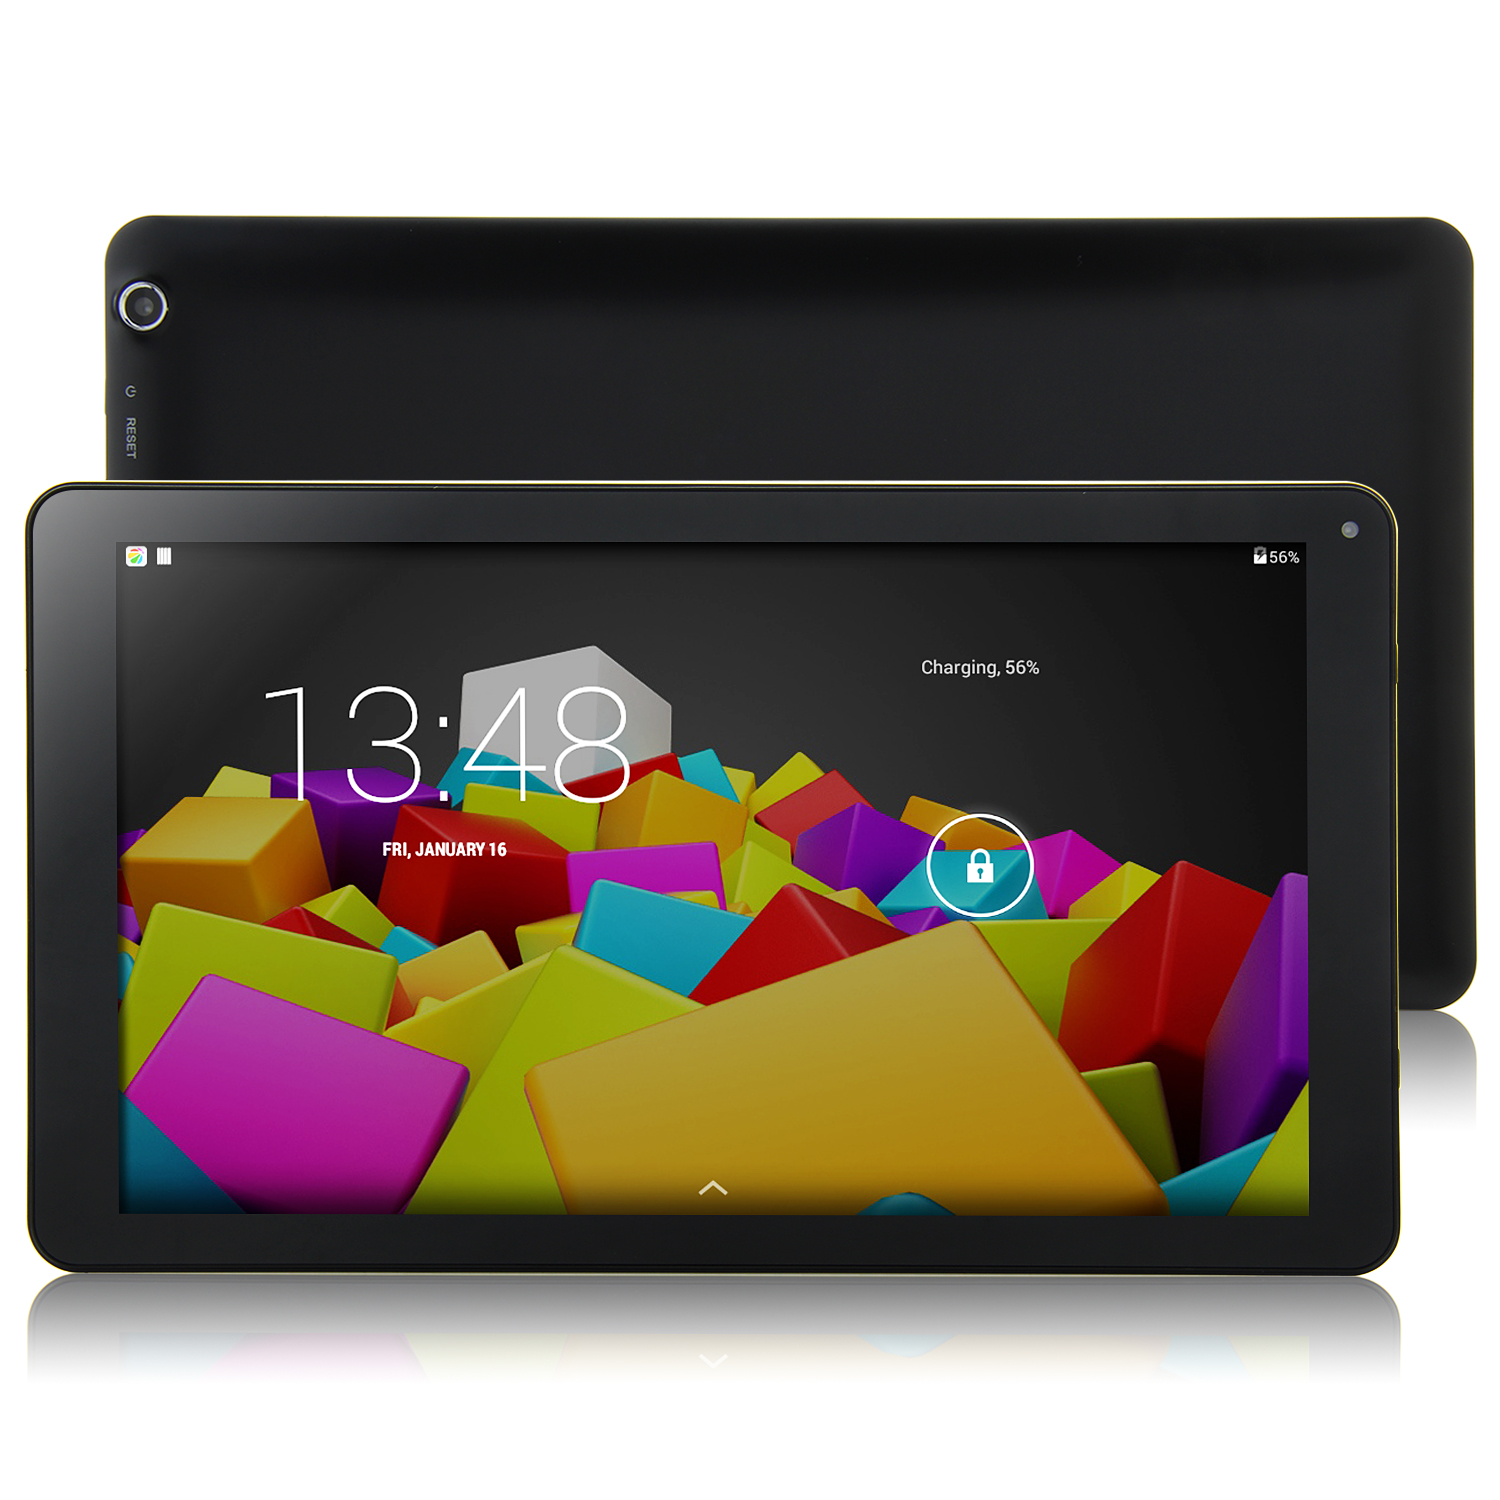 Venstar8050 Tablet PC A83T Octa Core 10.1 Inch Android 4.4 16GB 4K HDMI Black